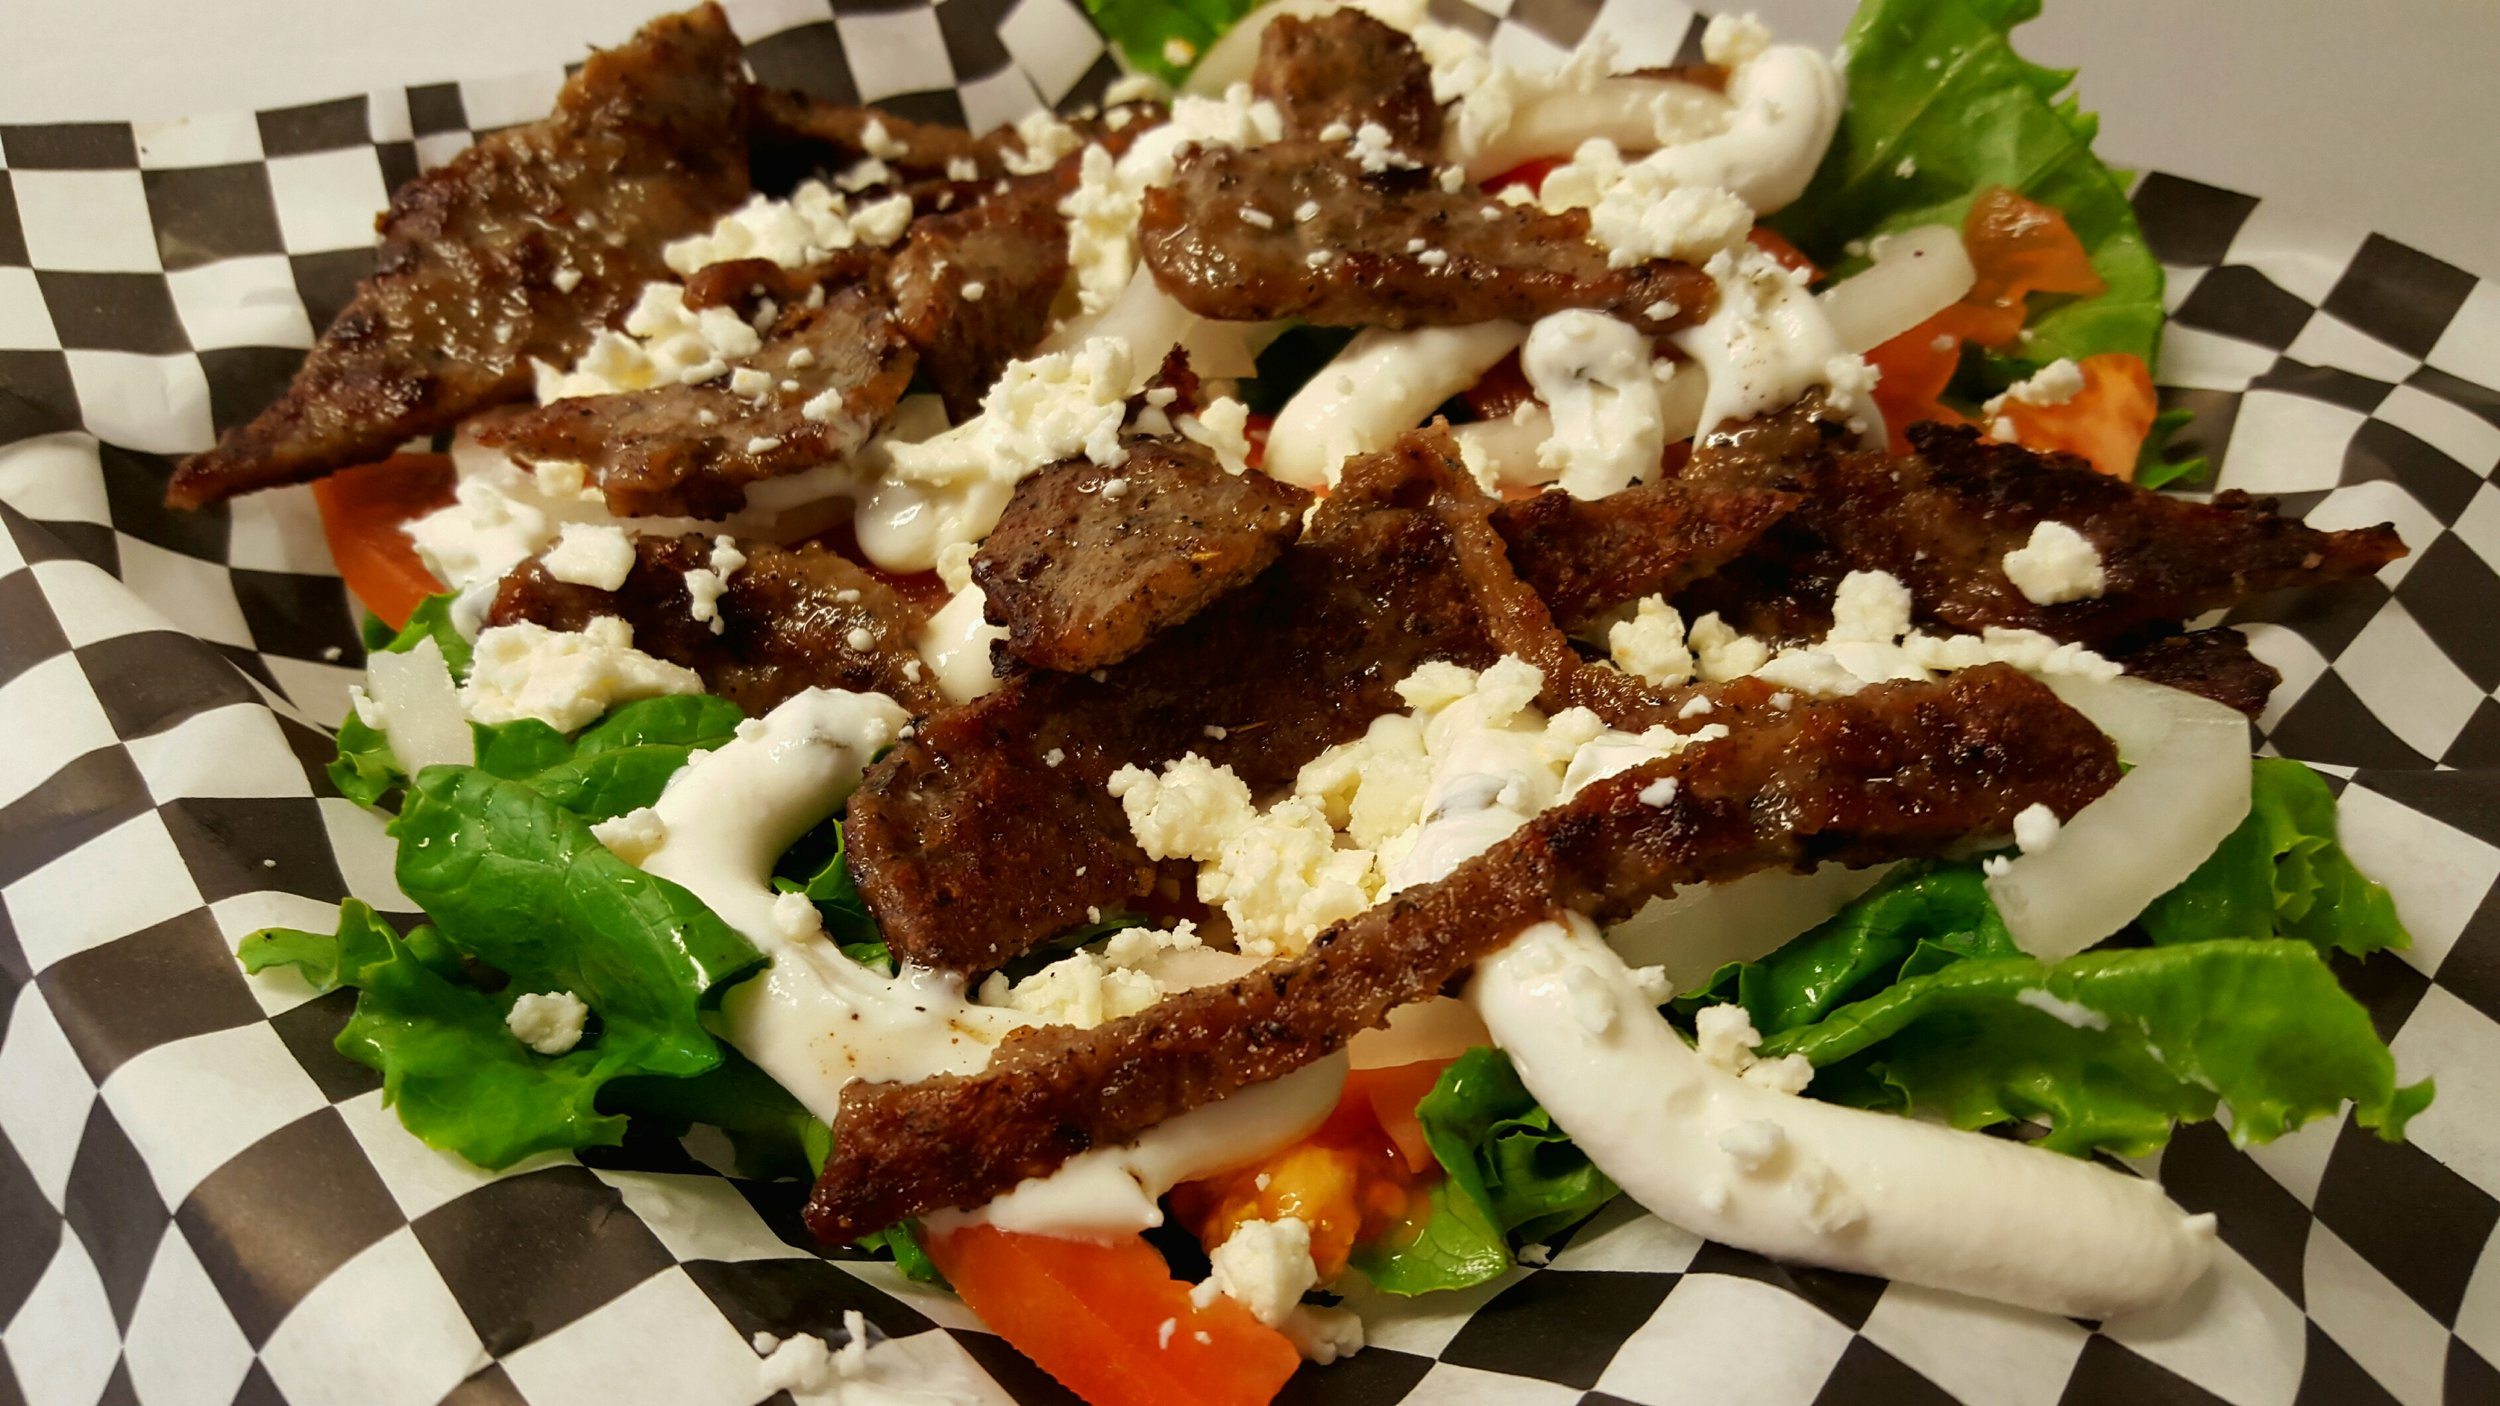 GREEK SALAD: A bed of crisp lettuce, tomatoes, onions topped with gyro meat ( lamb and beef ) and feta cheese.